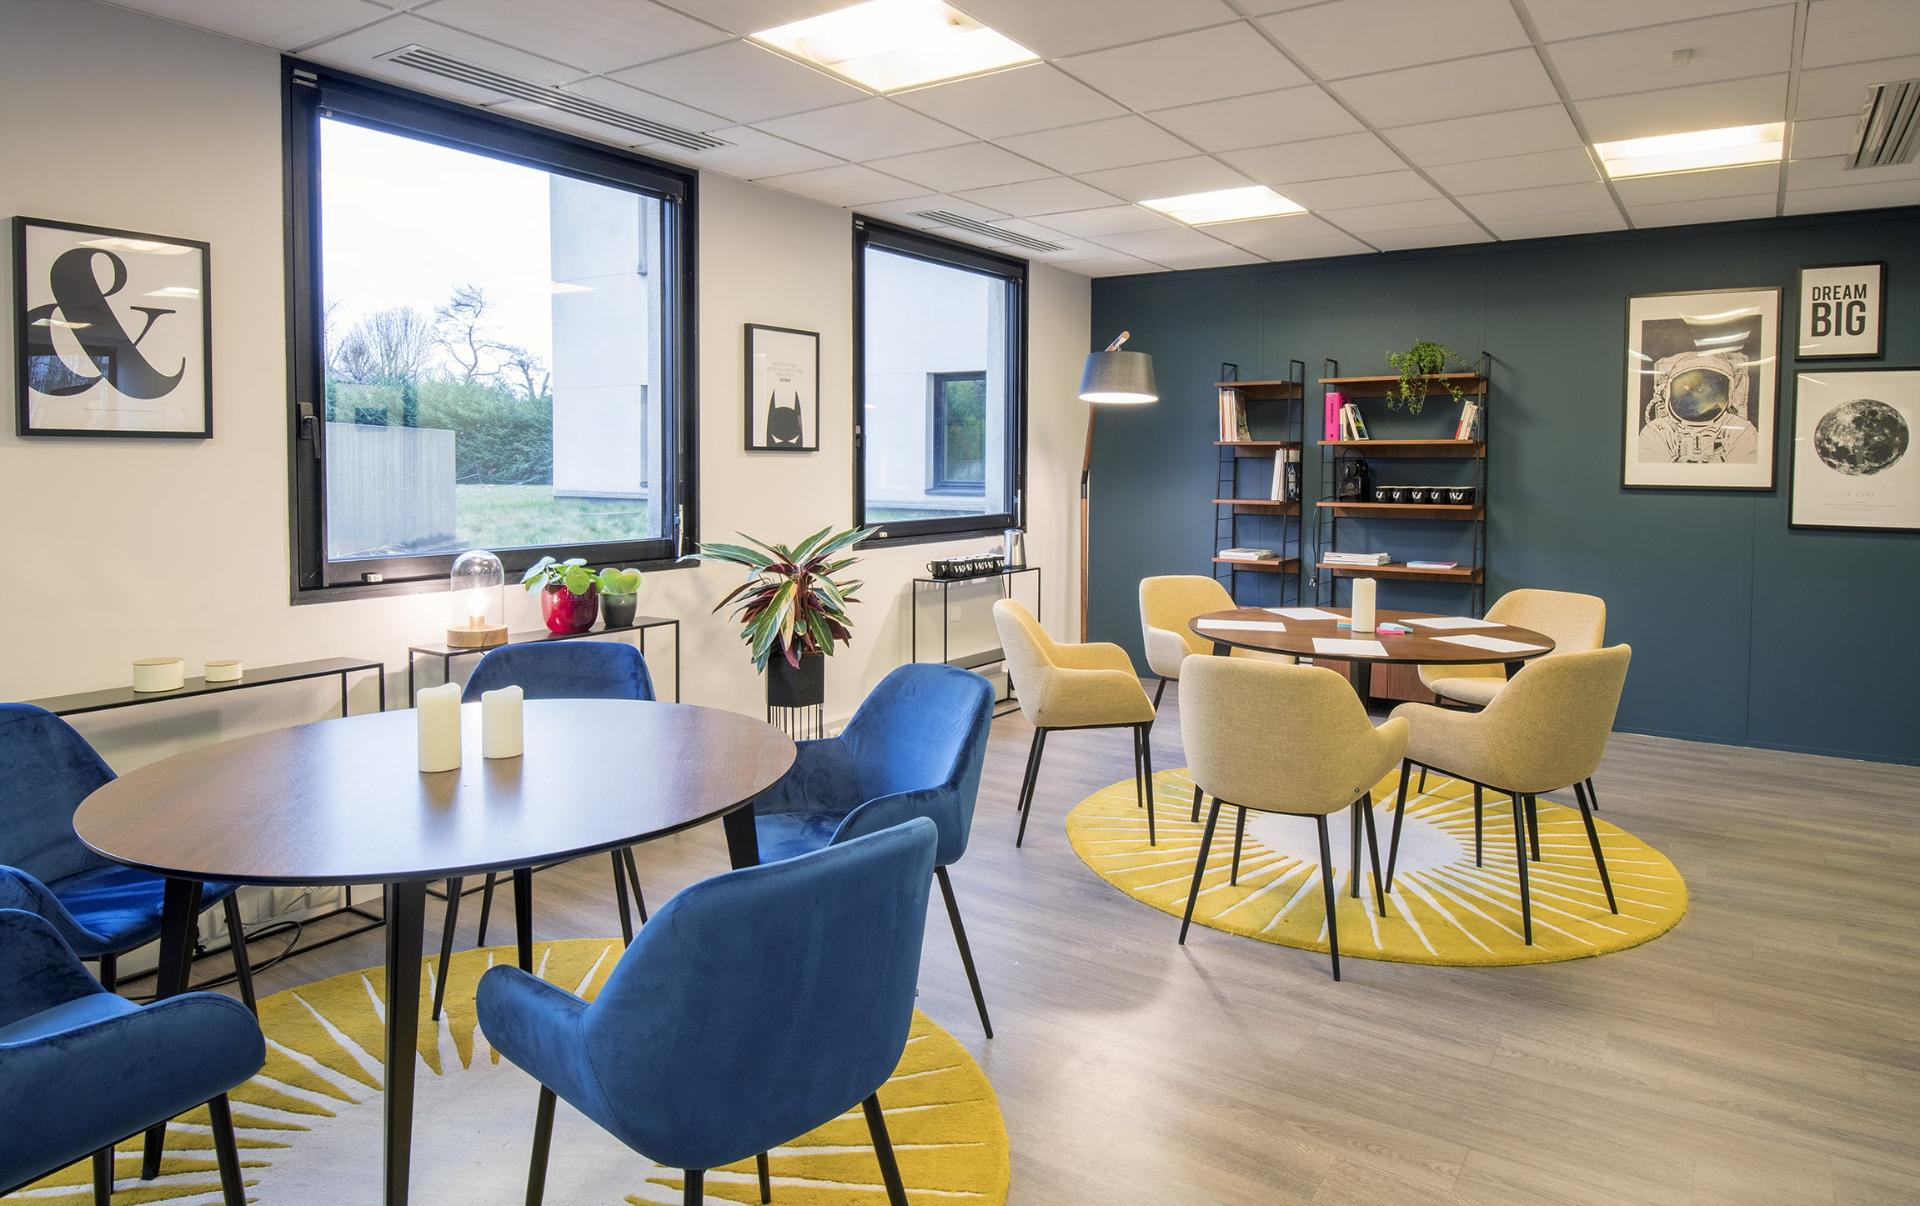 caption/coworking-salle-de-reunion-saint-ouen-urbidesk-rlu3.jpg